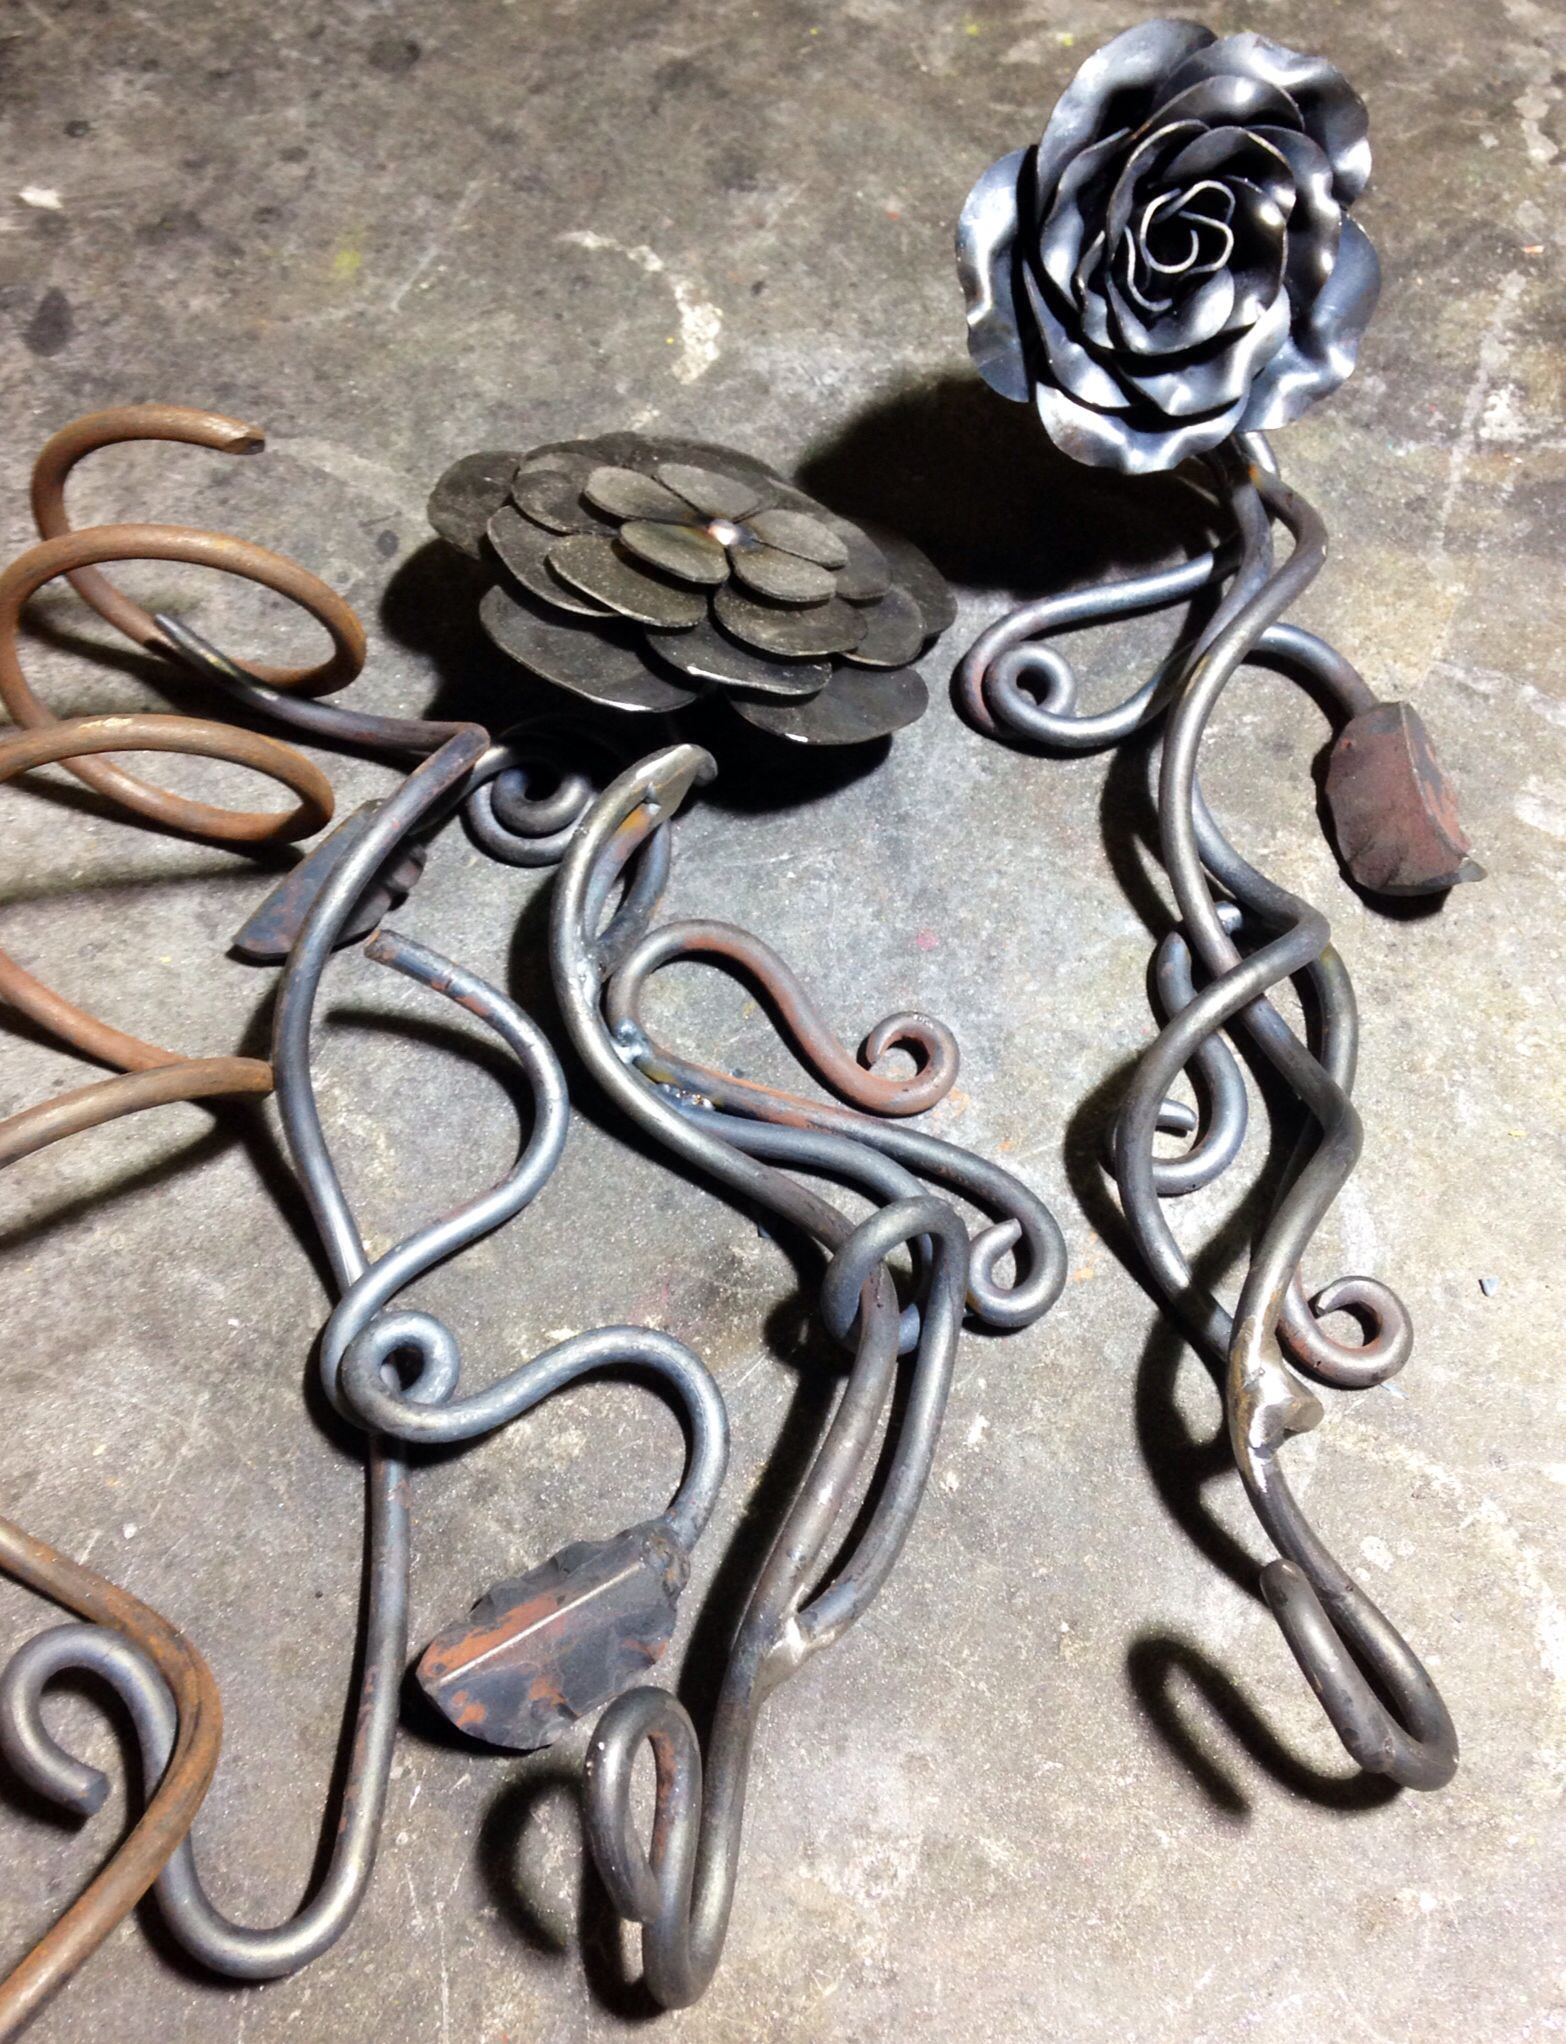 This Is The Order In How I Make My Steel Roses From Left To Right Spring Up Cycled Garage Doors Then Leaves Forged And Welded